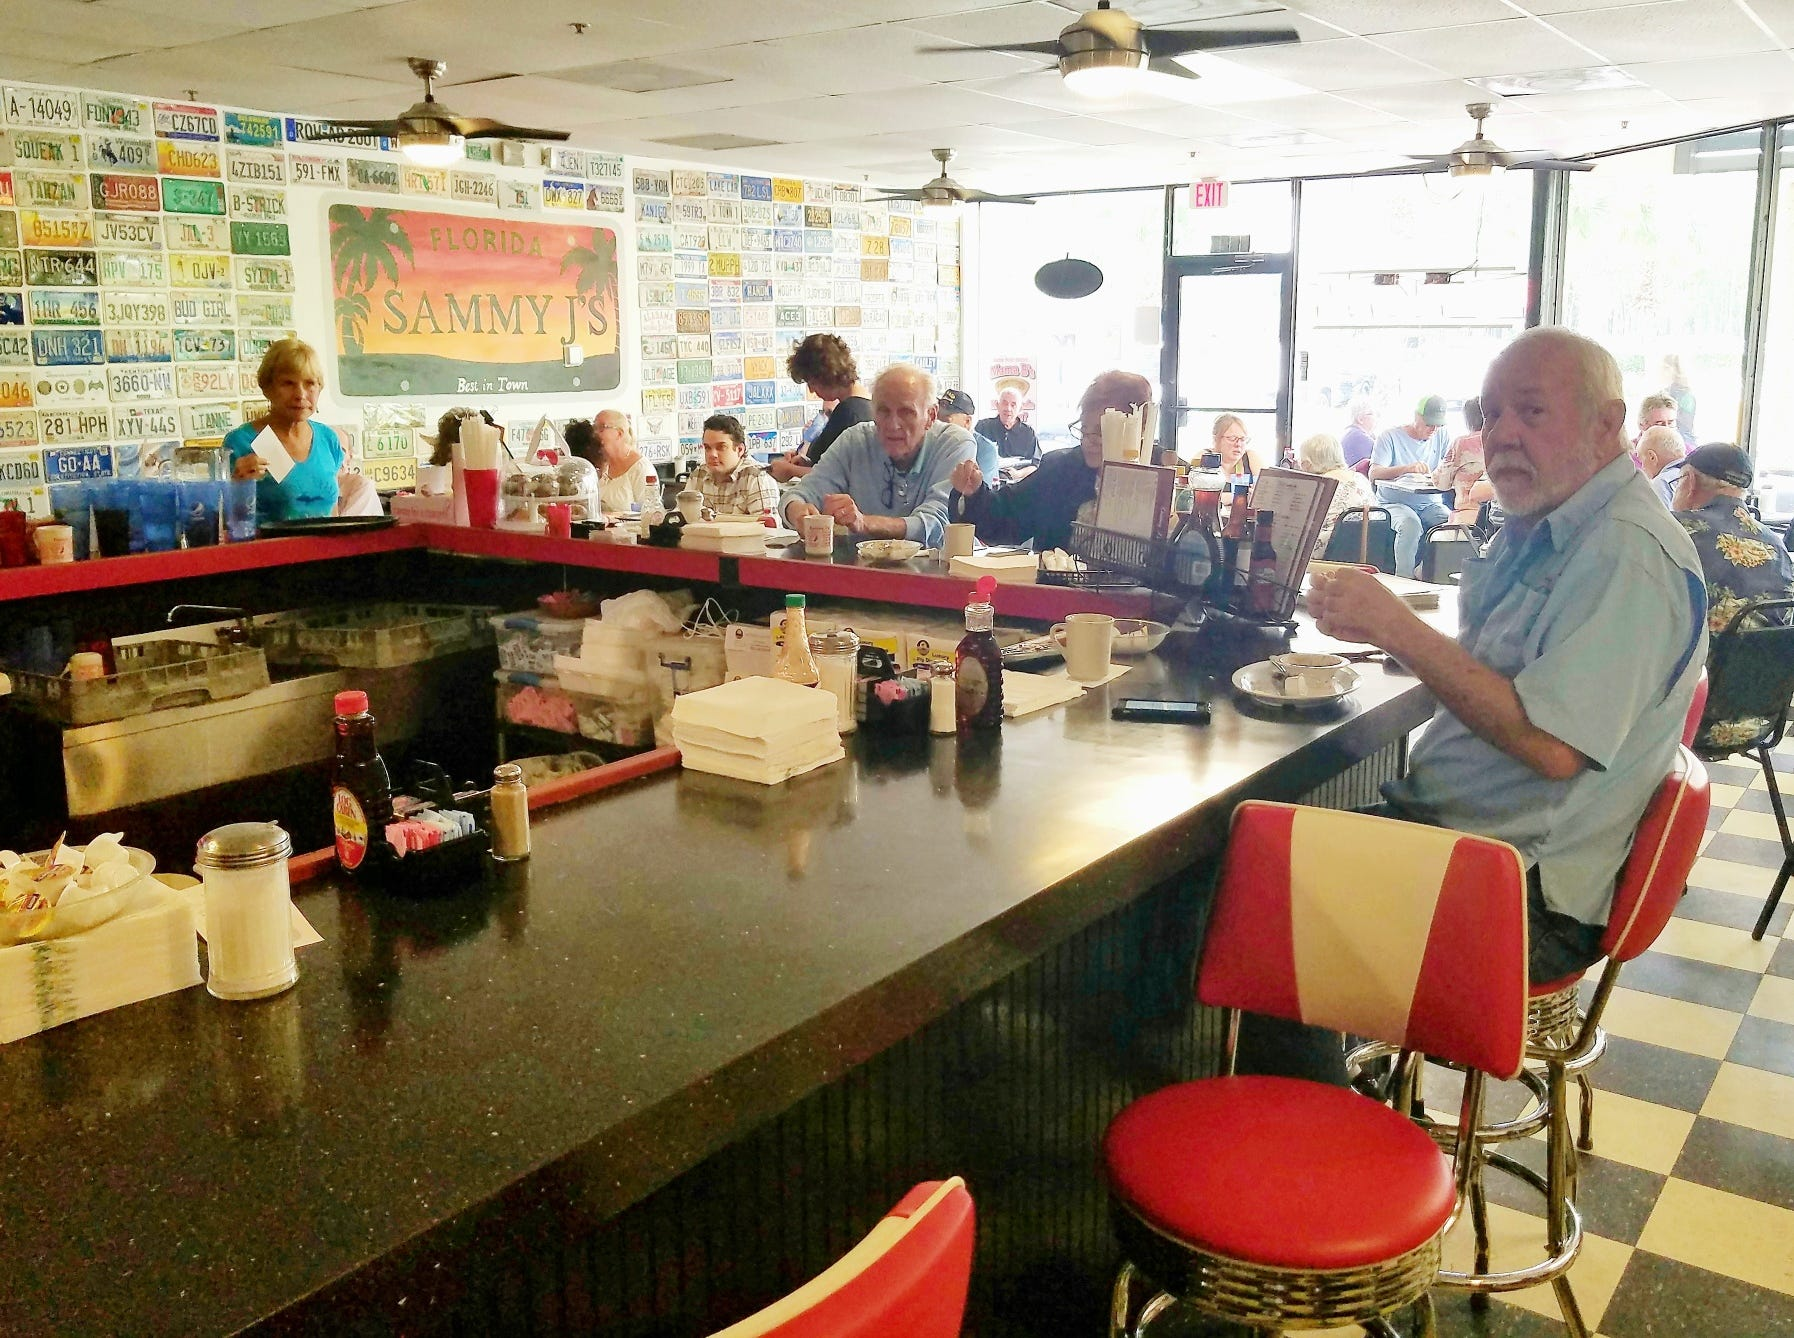 The counter at Sammy J's is a lively interactive place to enjoy your meal.